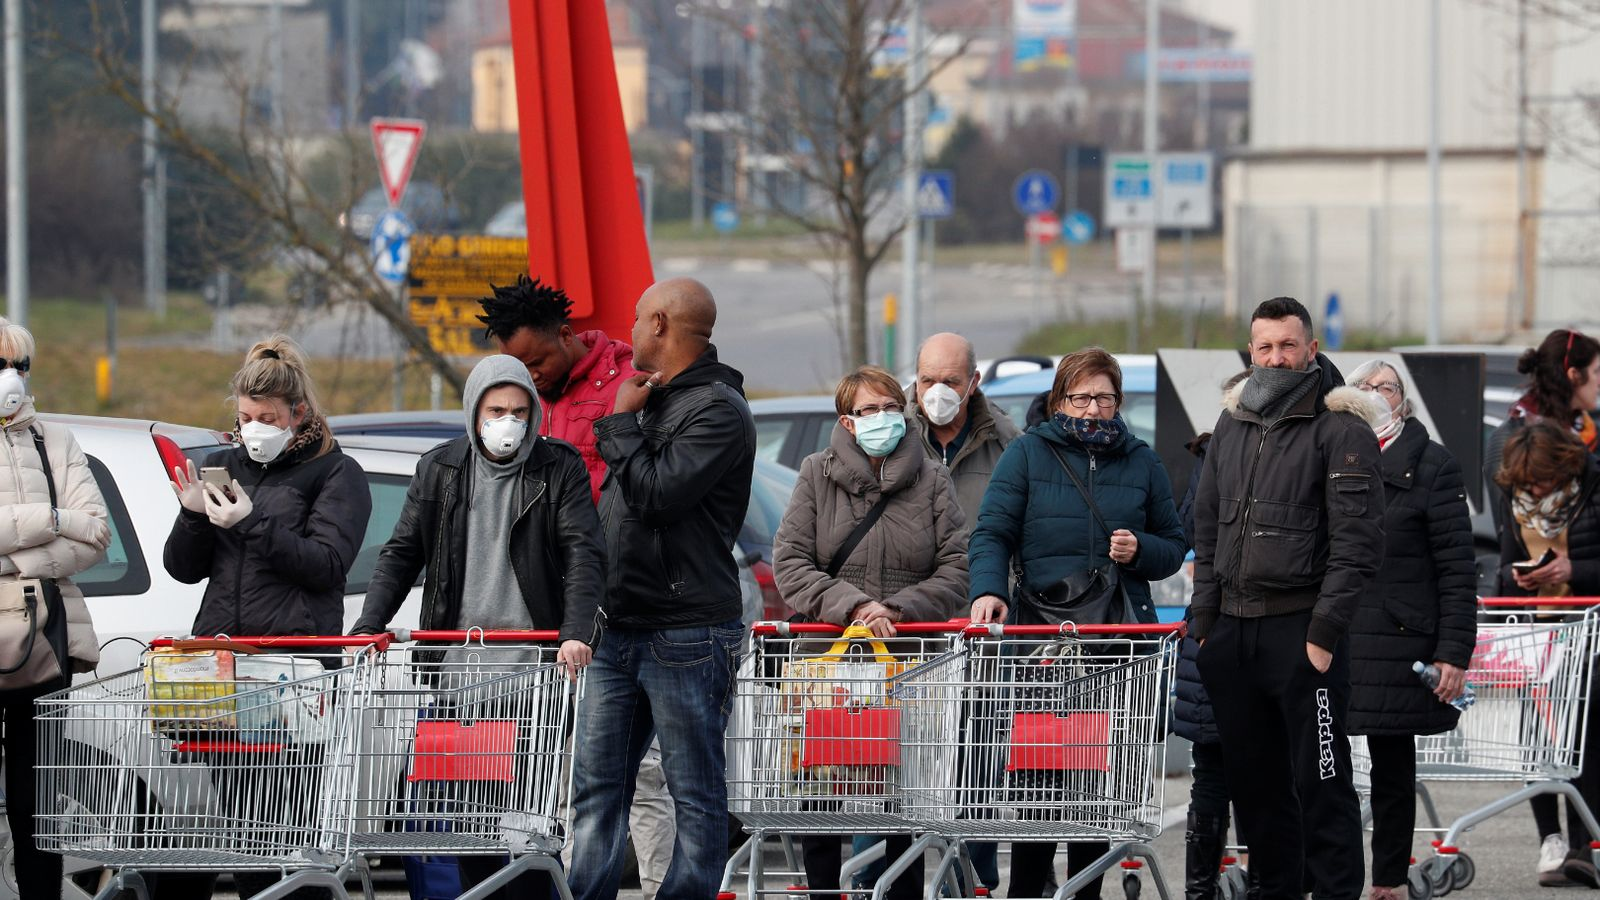 Coronavirus: Towns in lockdown as Italy races to contain Europe's biggest outbreak